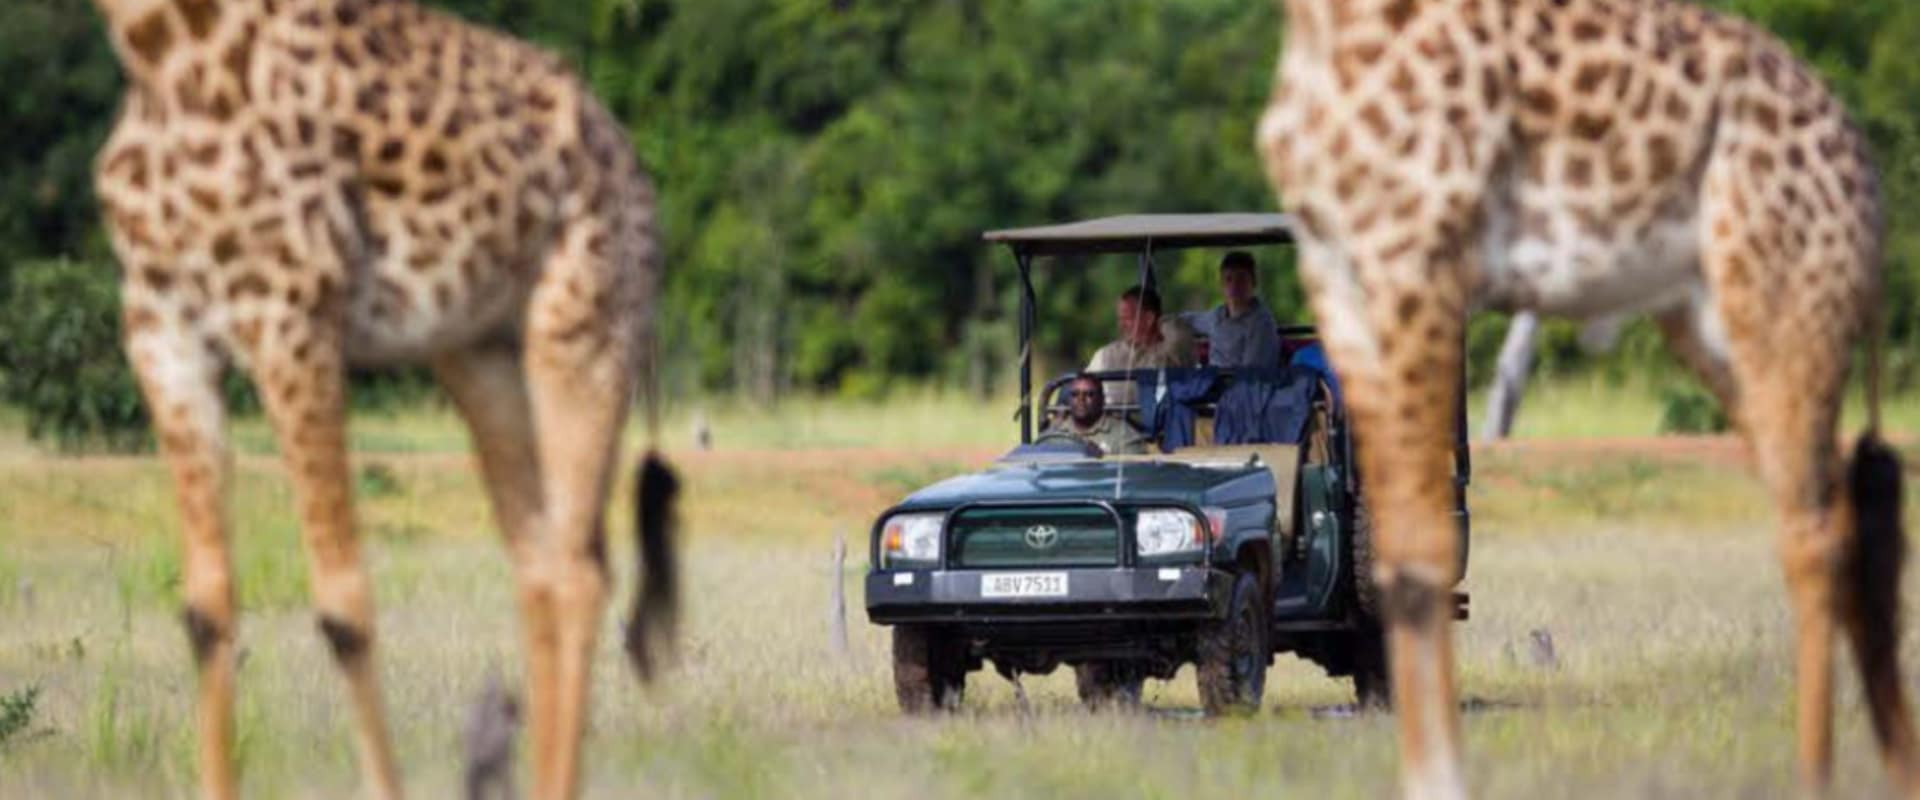 Thrilling game drives to witness world-class predator action